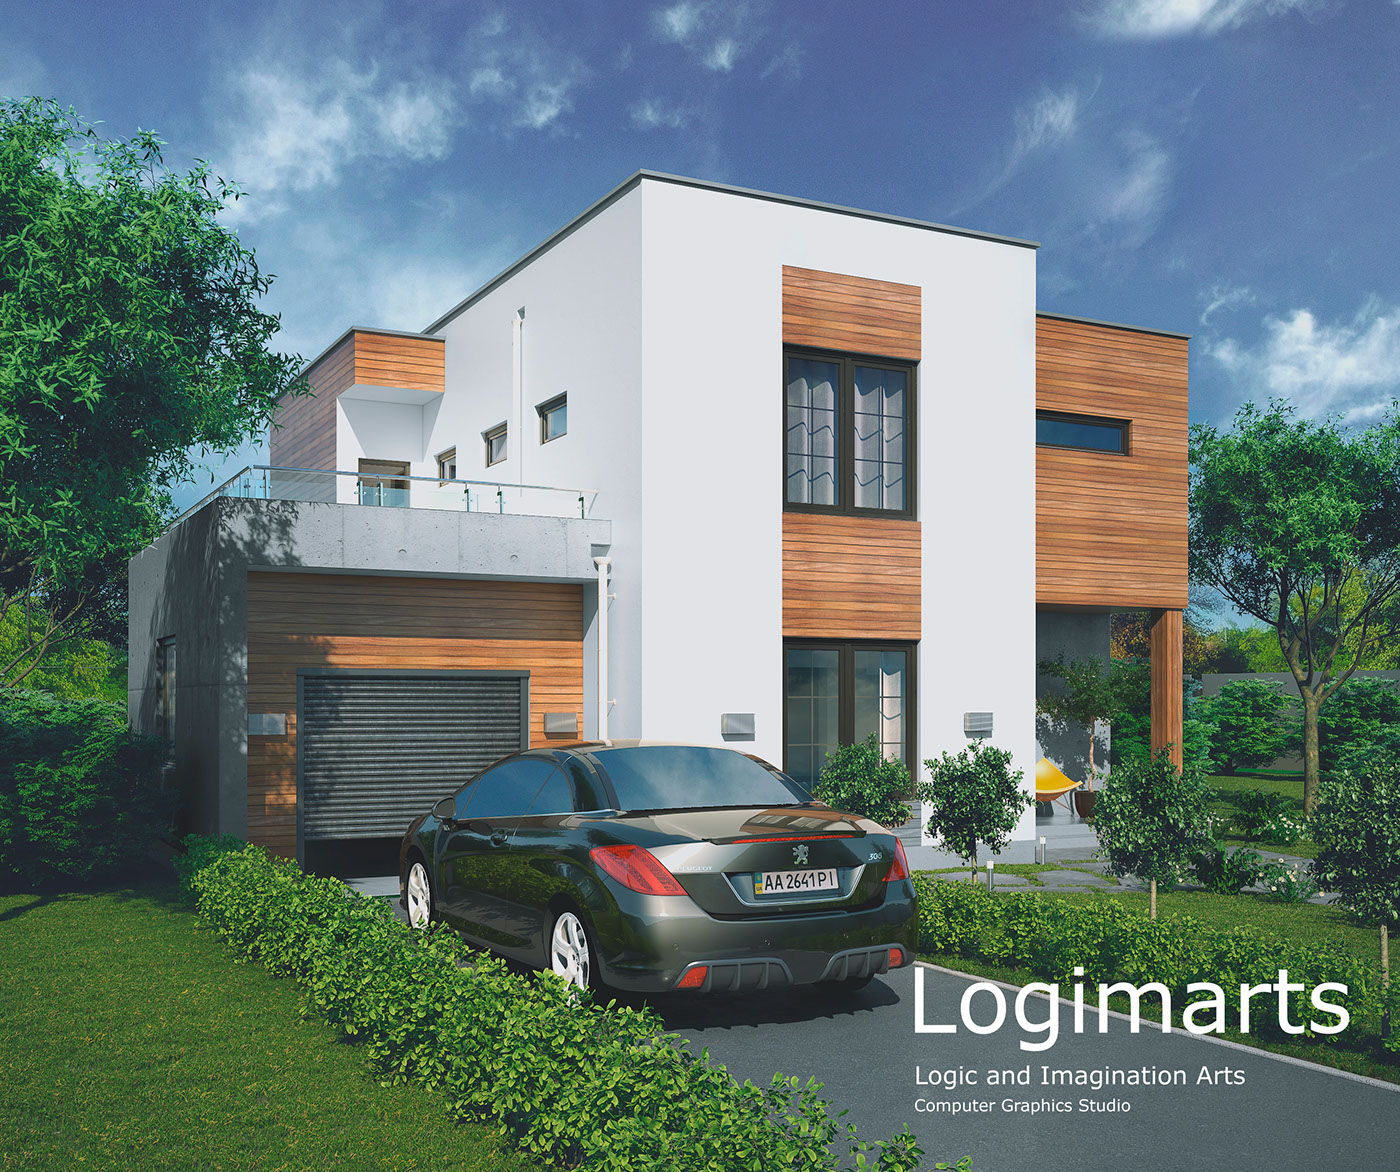 3dsmax architectural visualization rendering Production architectural design